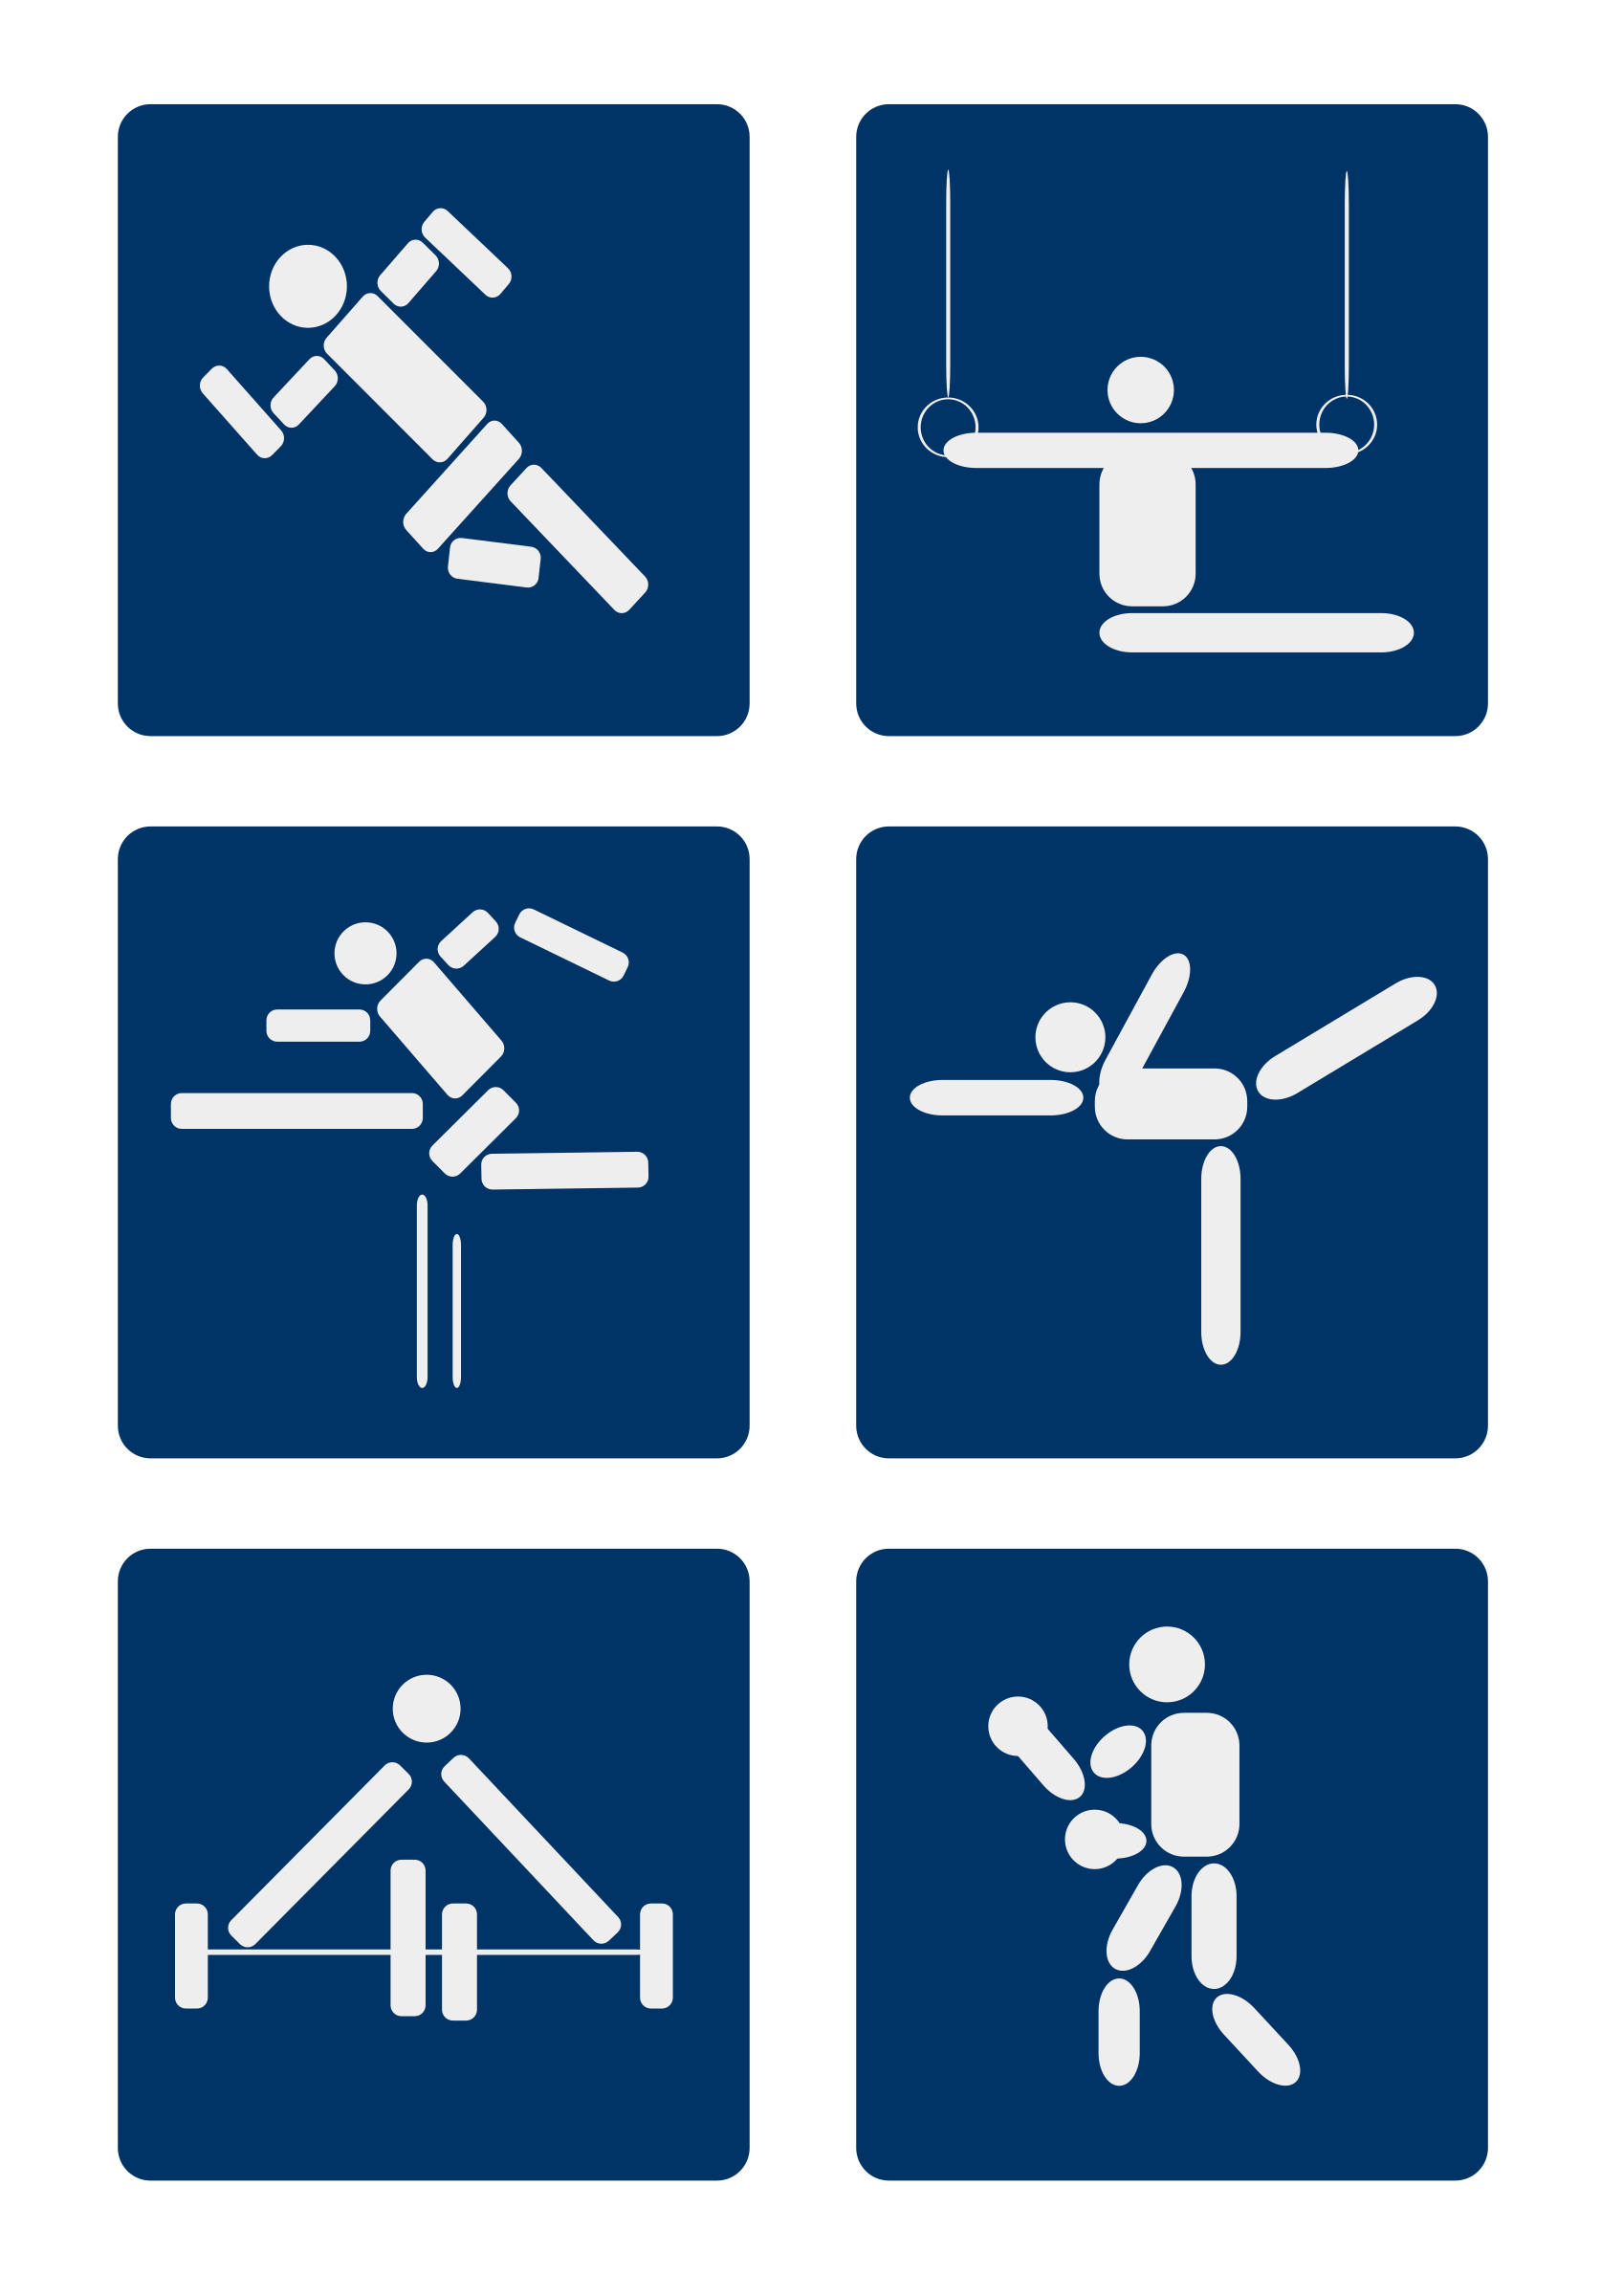 Sport Pictograms by shokunin